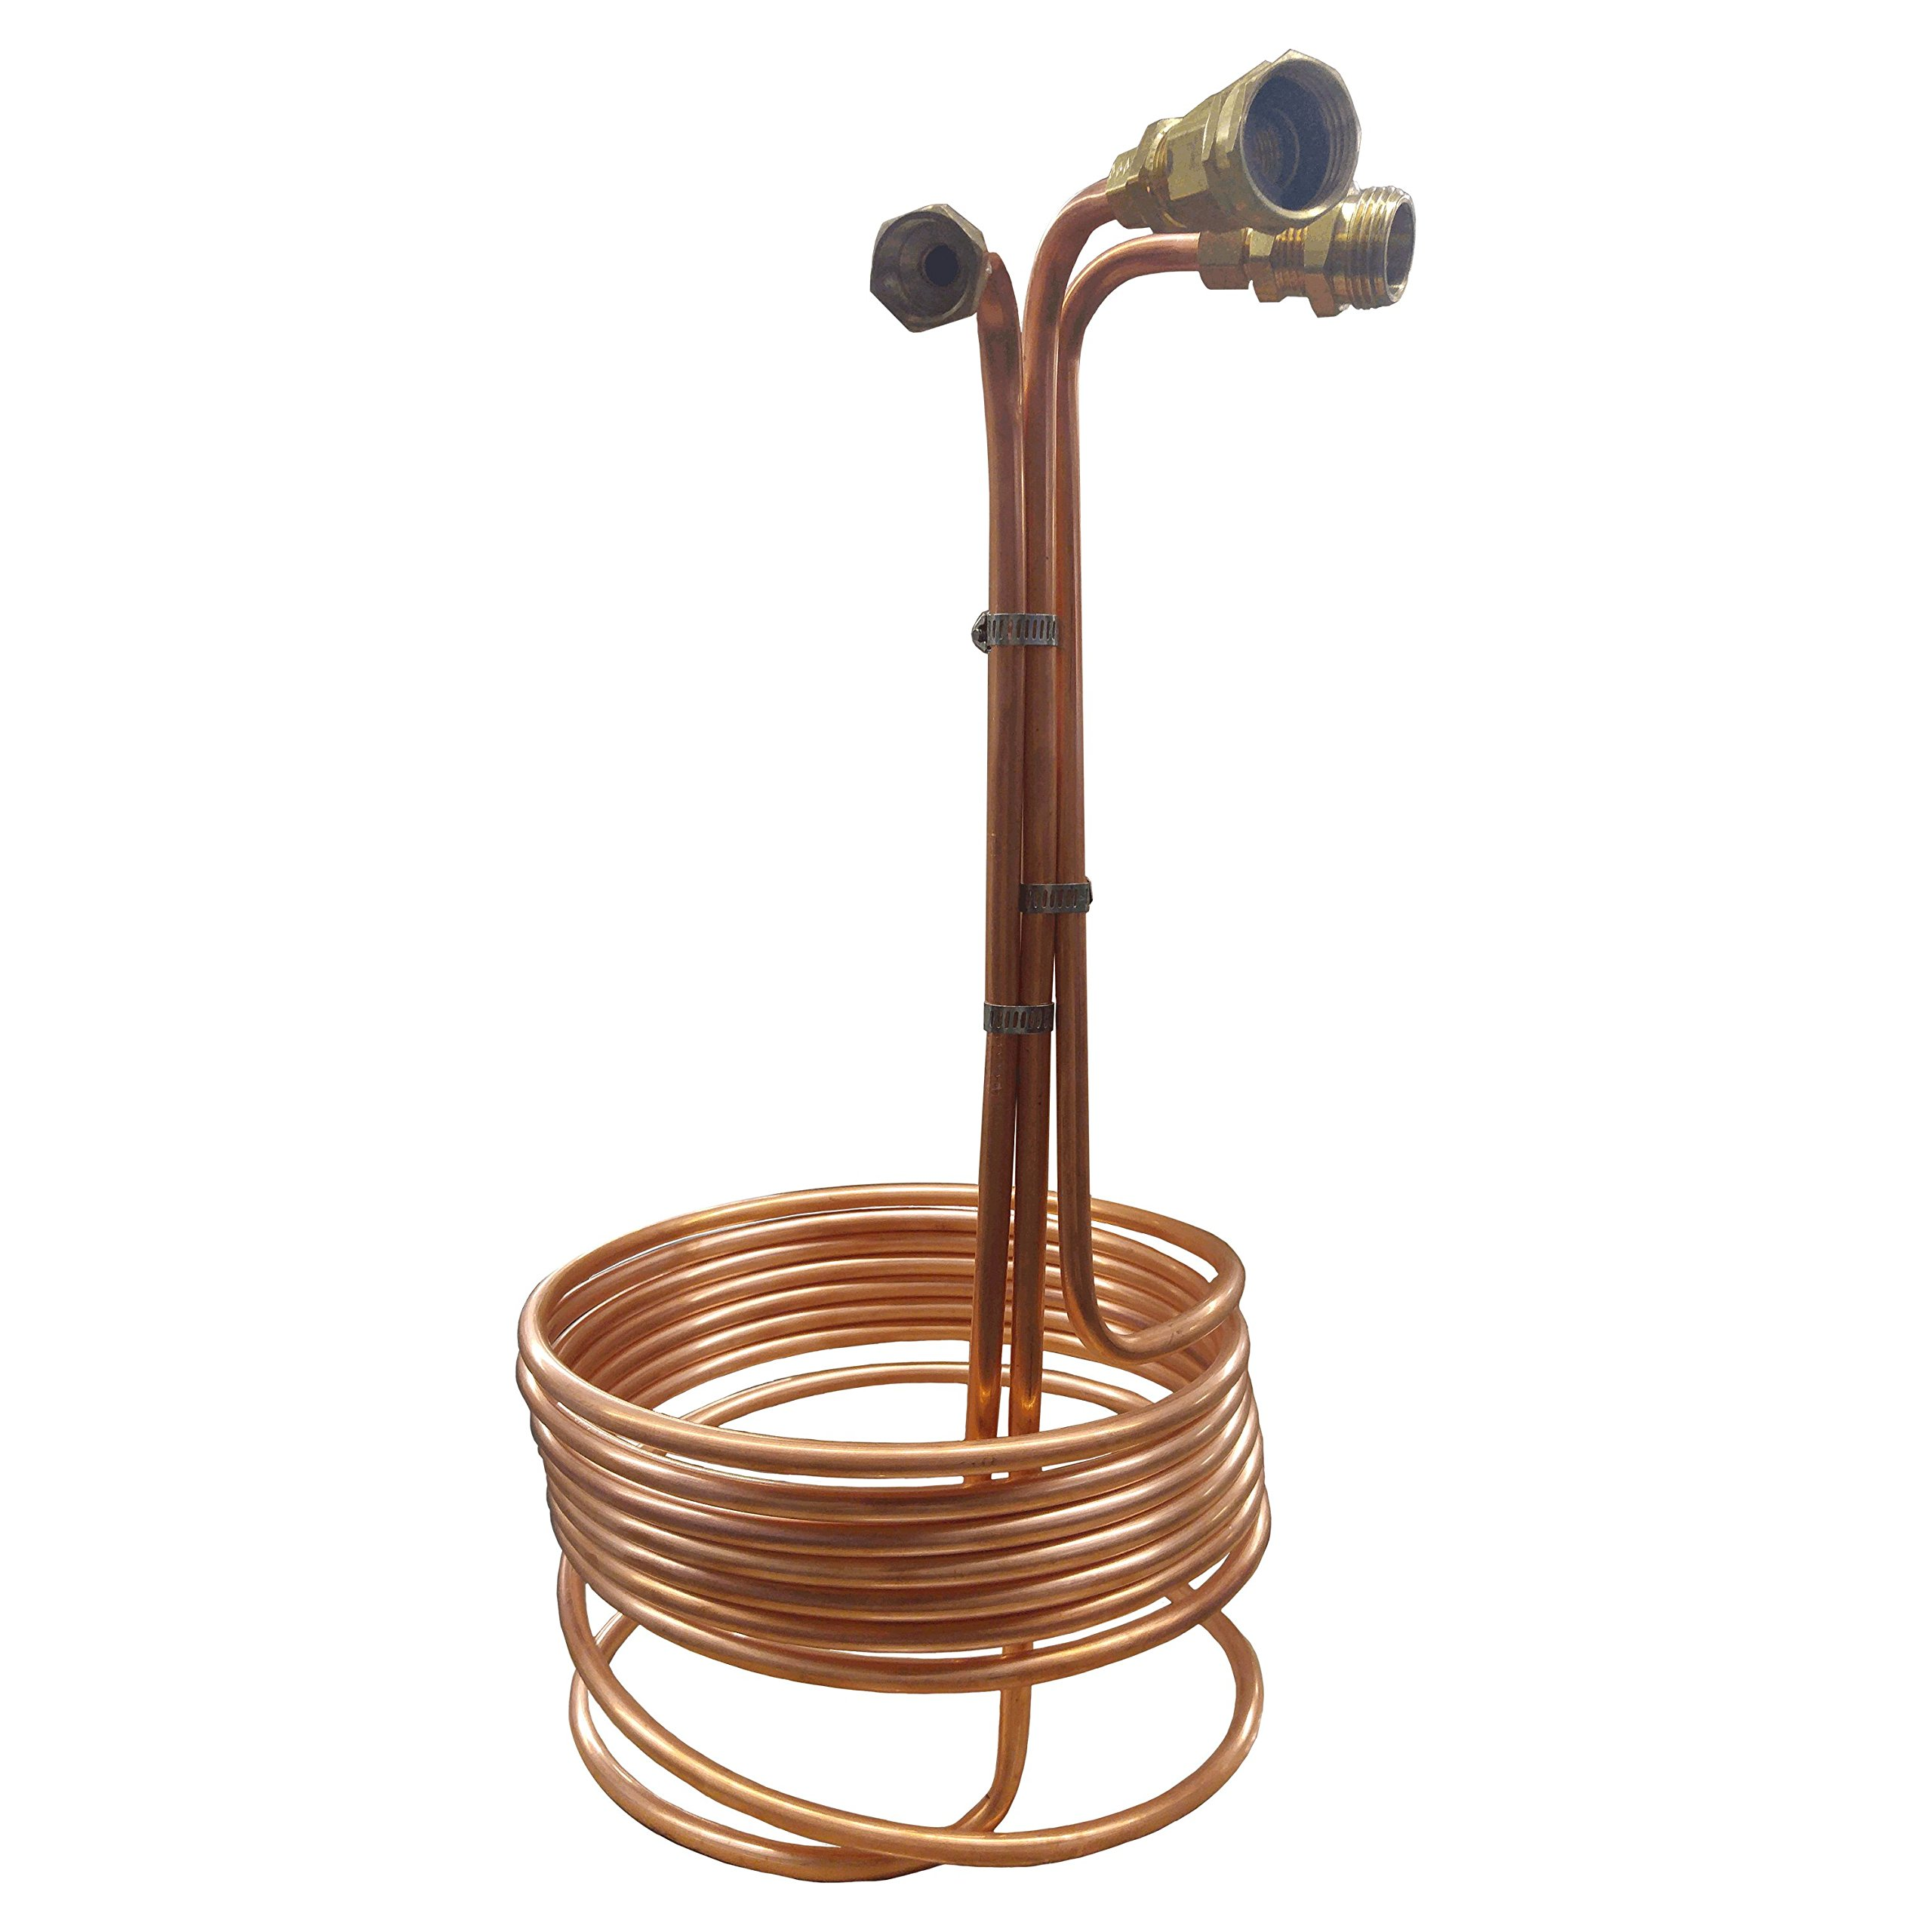 HomeBrewStuff Super Efficient 3/8'' x 25' Copper Wort Chiller with Recirculating Arm and Compression Fittings